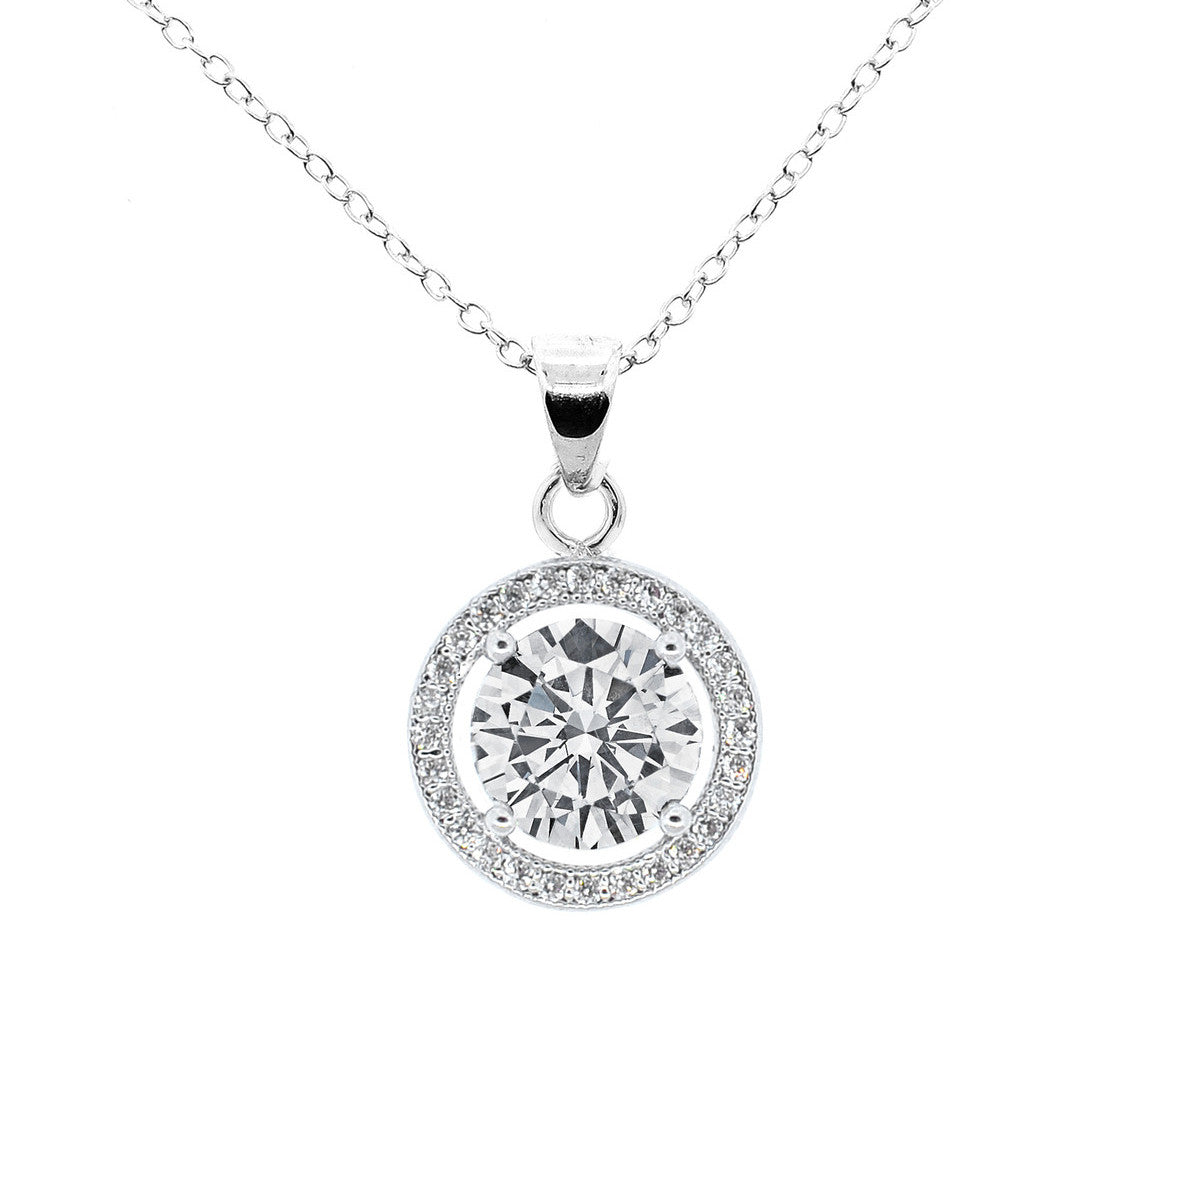 Blake 18k white gold plated pendant necklace cate chloe jewelry blake true 18k white gold plated pendant necklace mozeypictures Gallery